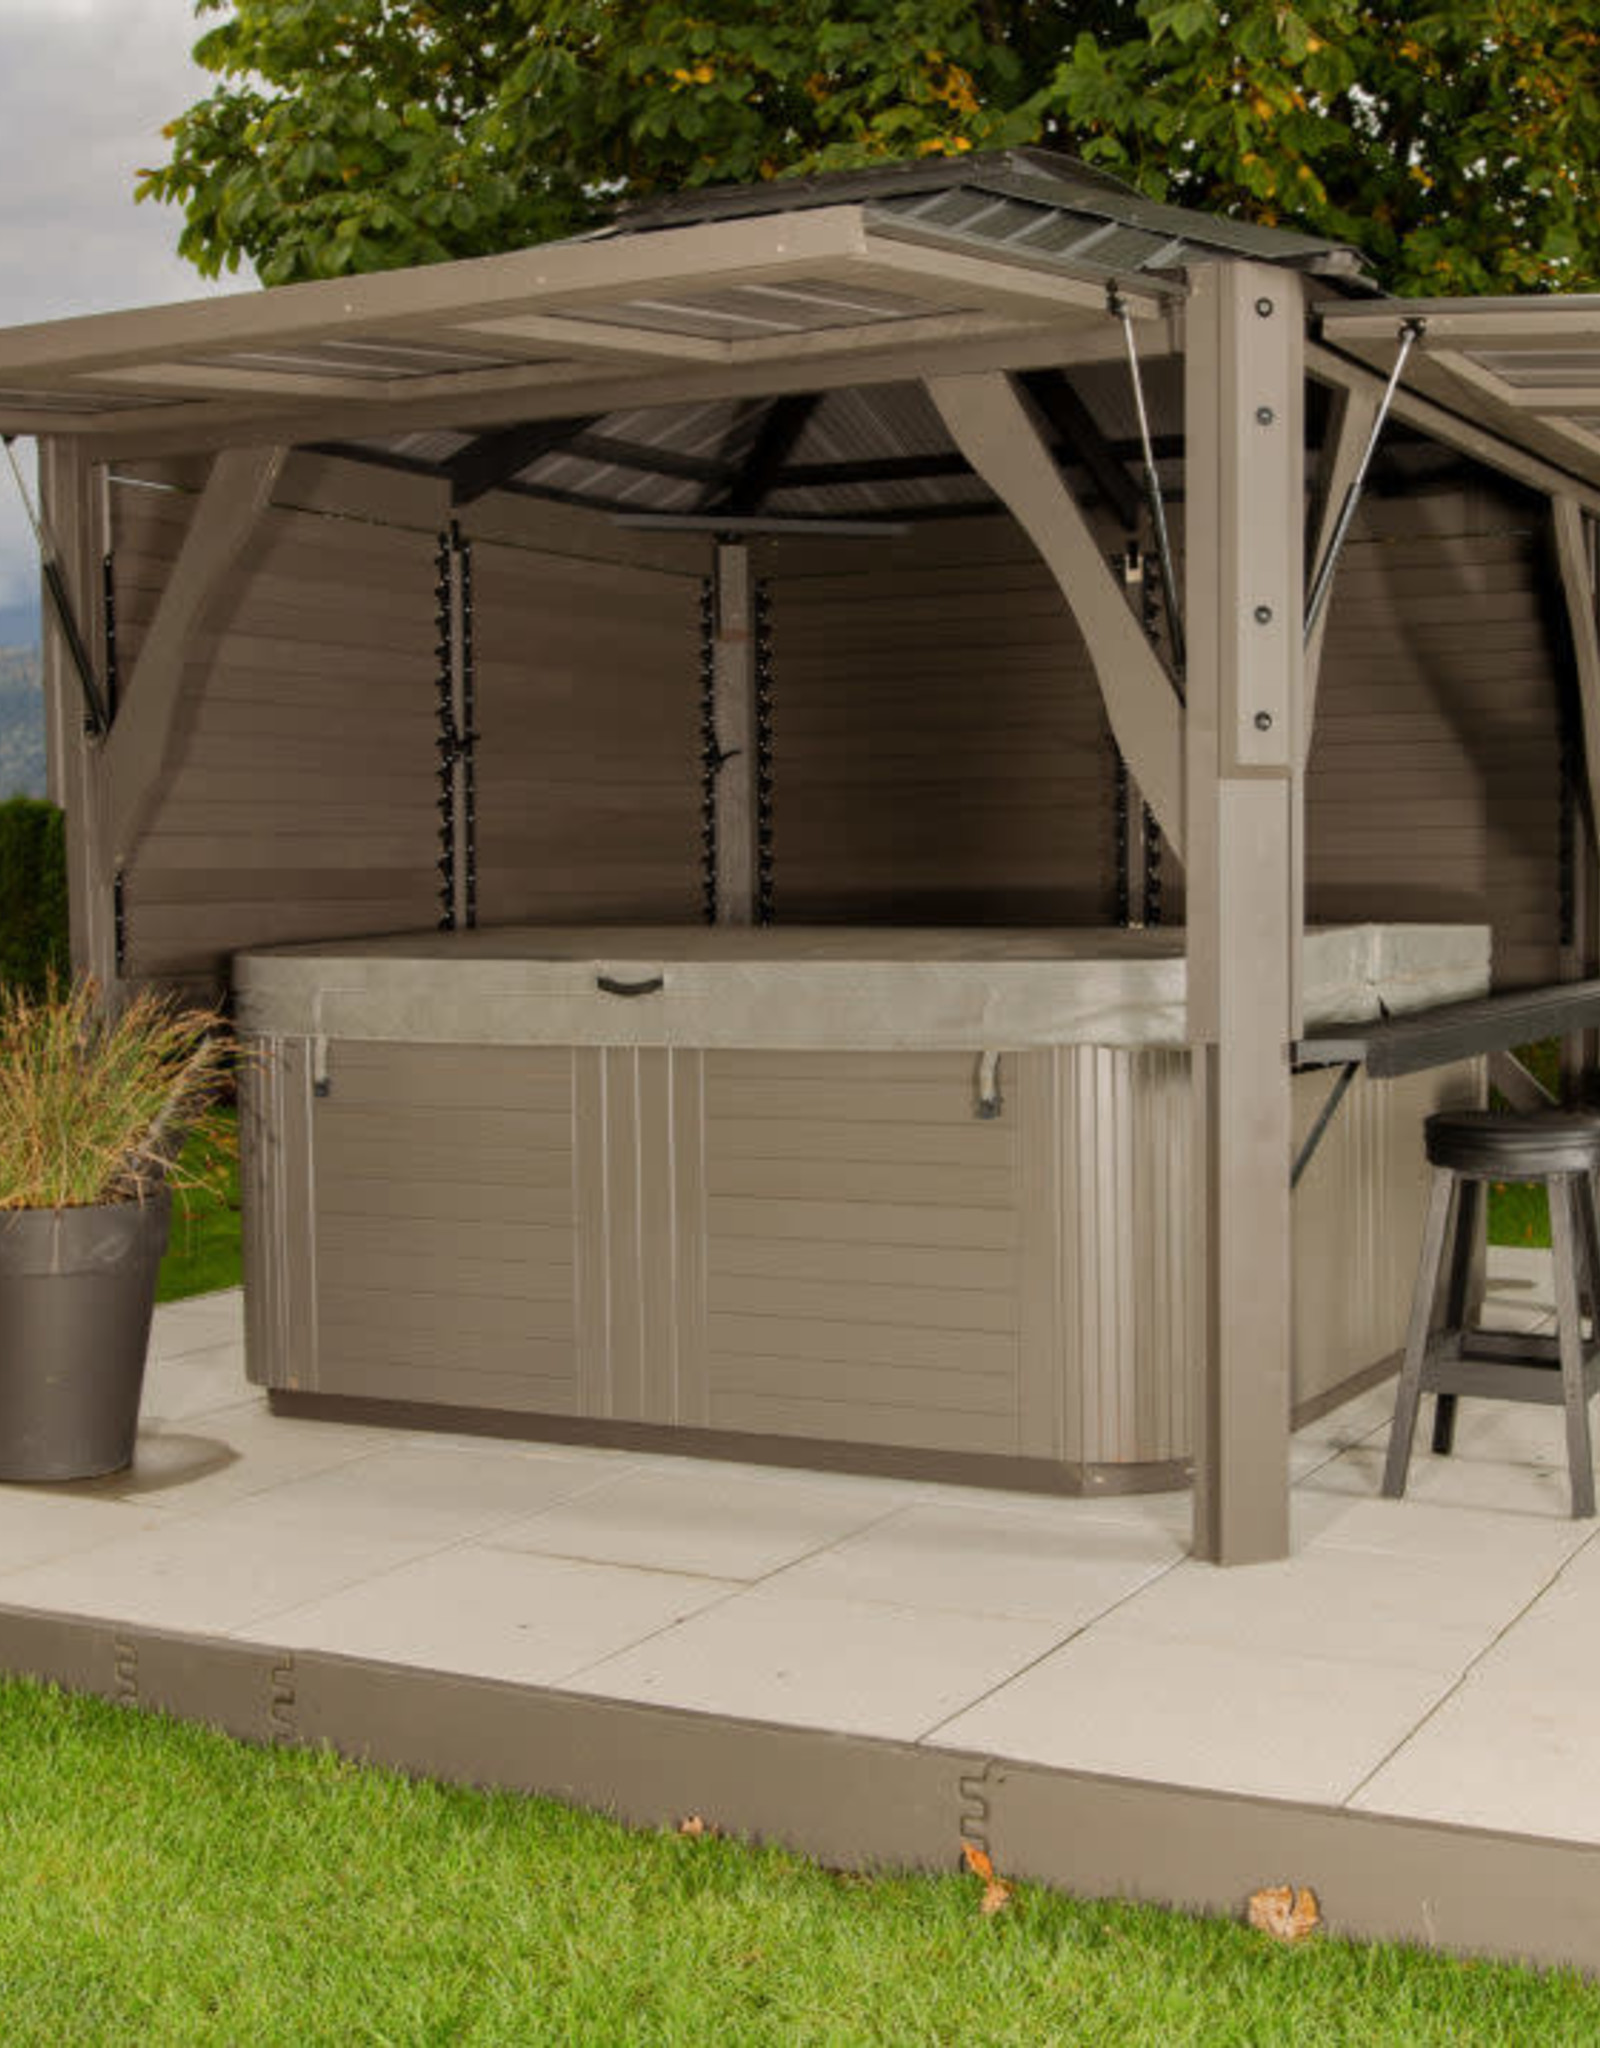 VISSCHER VISSCHER GAZEBO 9X9 NAPA (CUSTOMIZABLE)